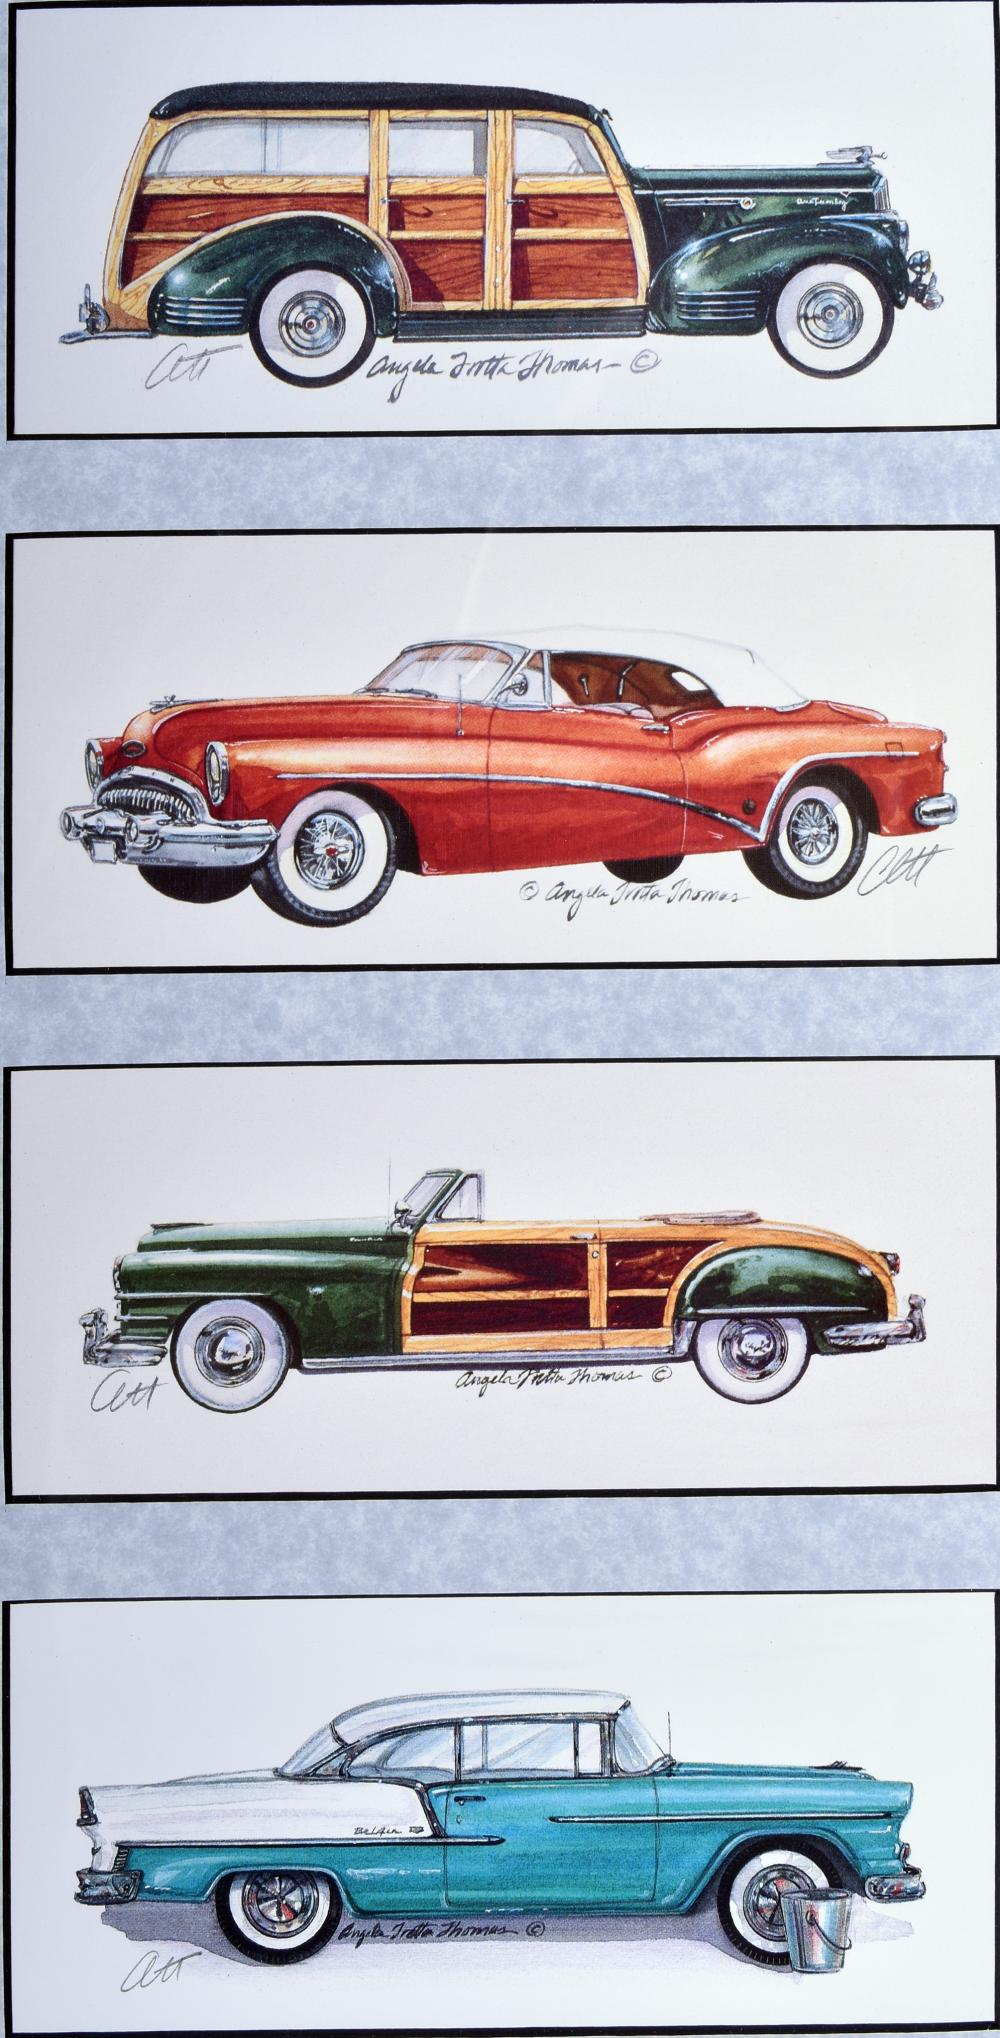 """Angela Trotta Thomas, Four Classic Automobiles - 1941 Packard One Twenty, 1953 Buick Special, 1955 Chevrolet Belair, and 1948 Chrysler Town and Country, Framed print, 20"""" x 12"""""""